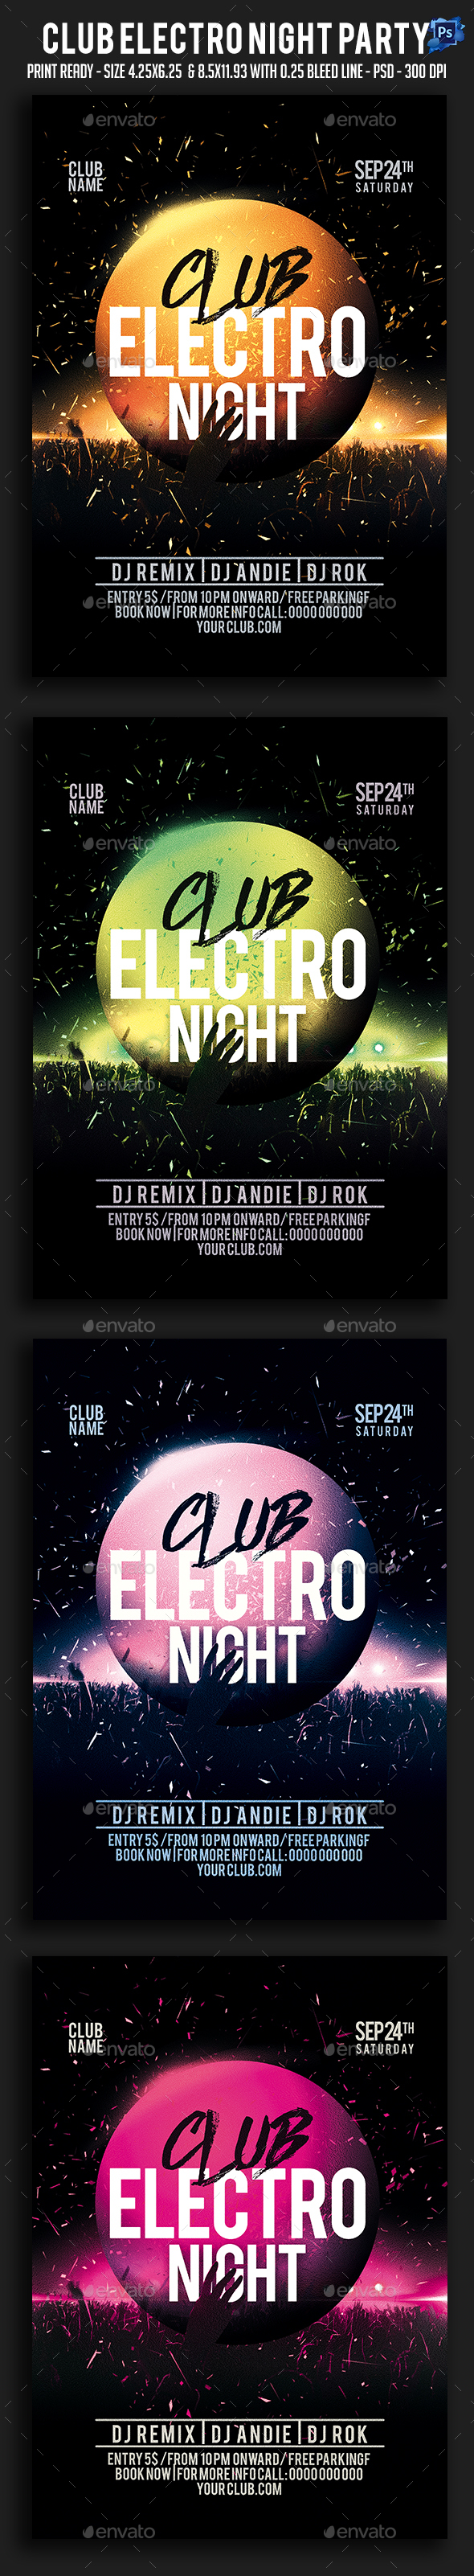 Club Electro Night Party Flyer - Clubs & Parties Events